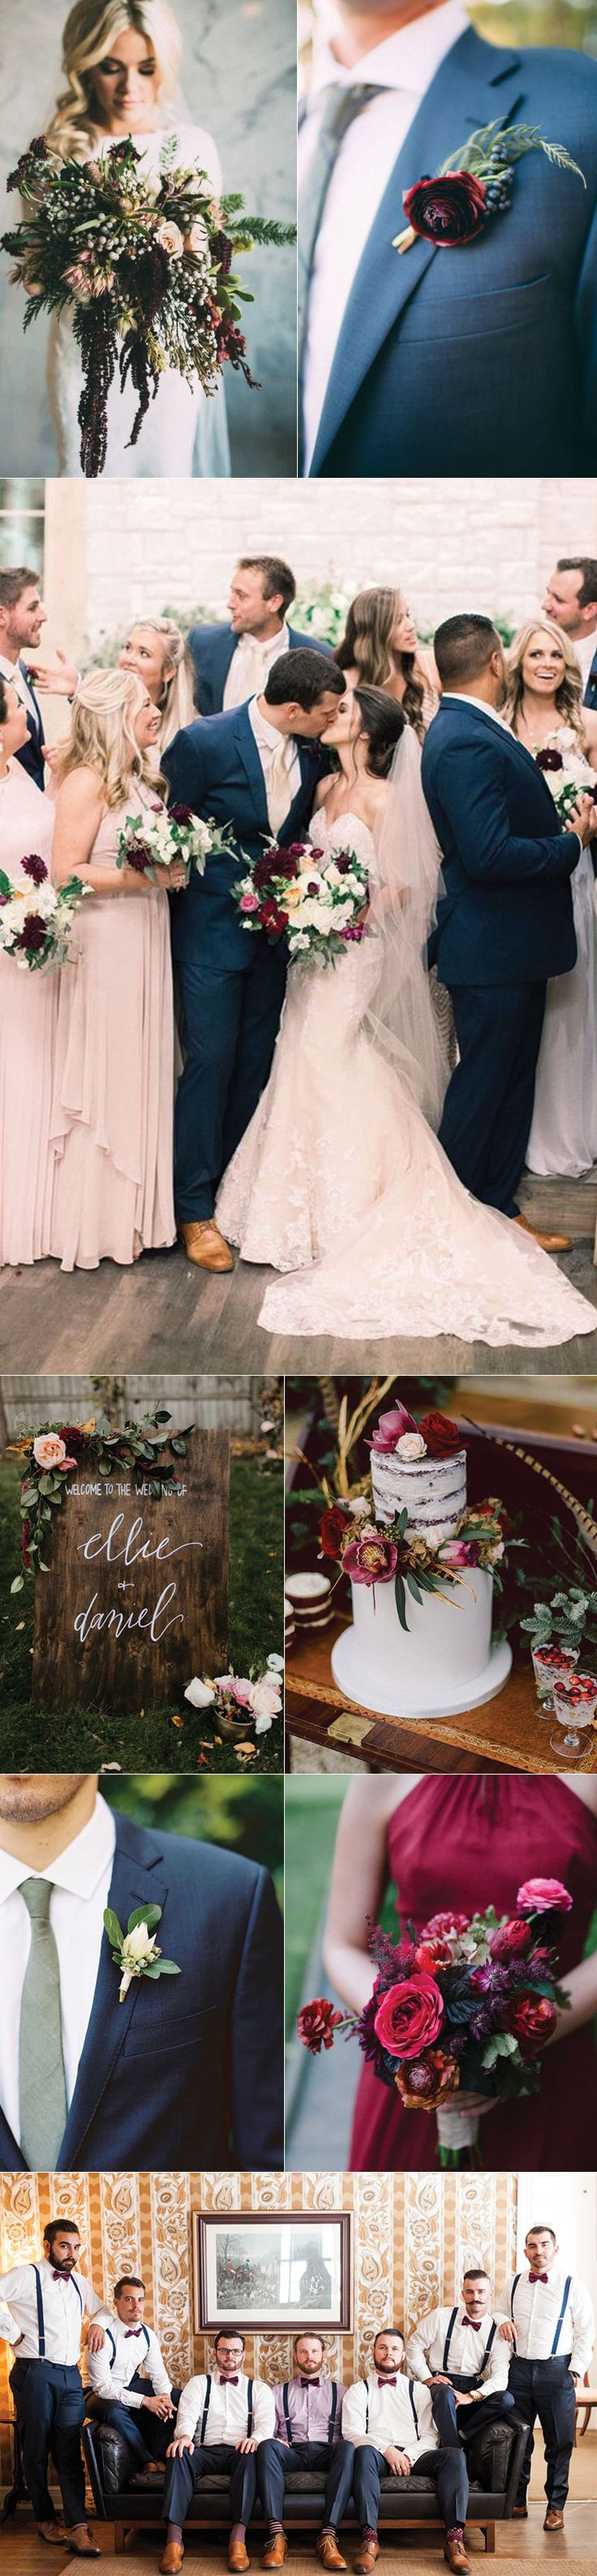 Autumn Wedding Exquisite Shades of Plum, Blush and Sage. Love the blush dresses navy tuxes and burgundy flowers